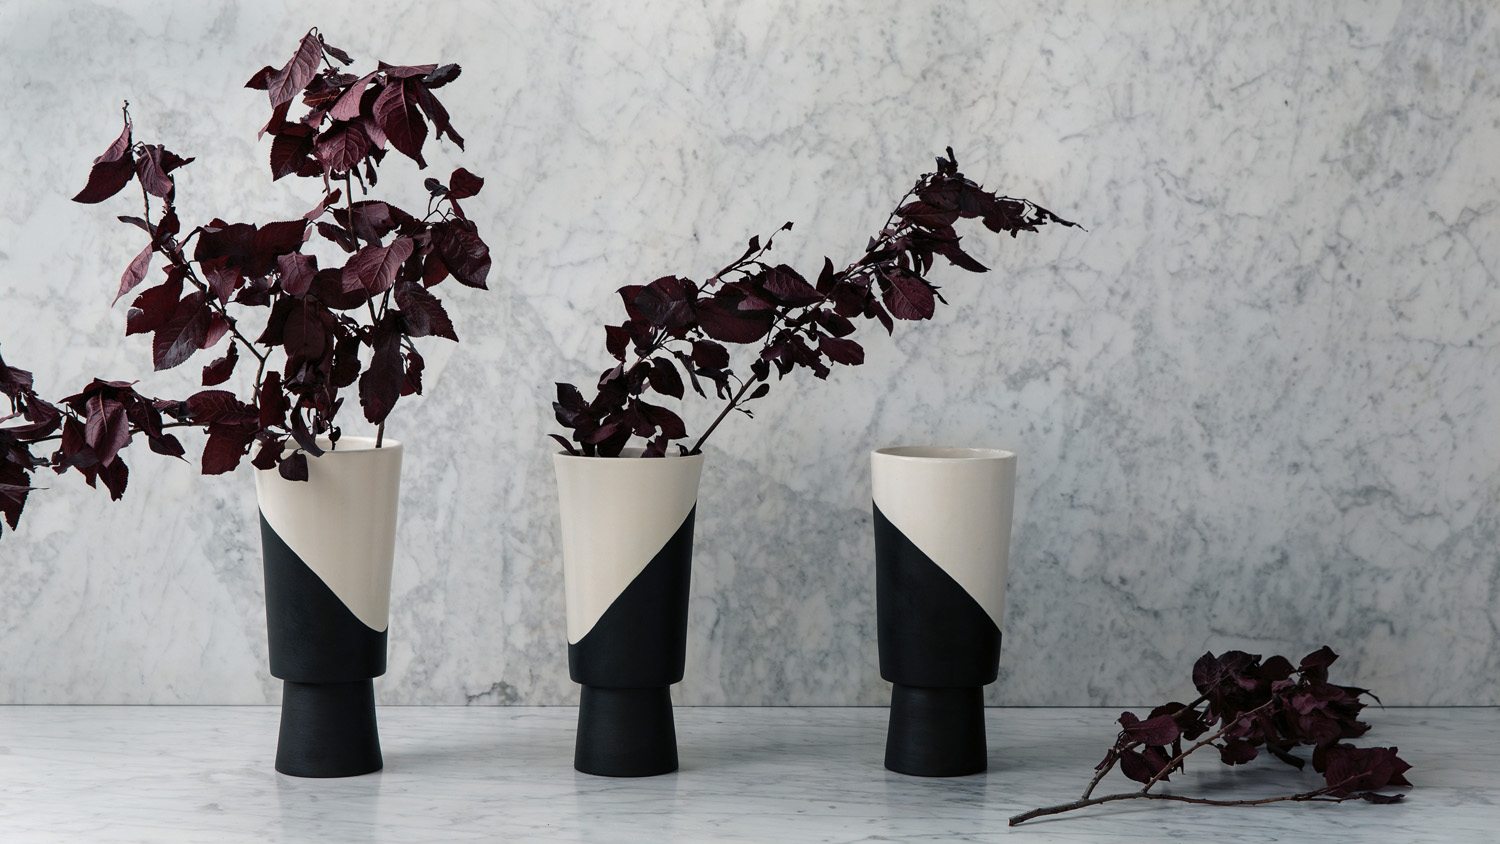 Shift vase series by Jeremy Anderson, $1760, criteriacollection.com.au